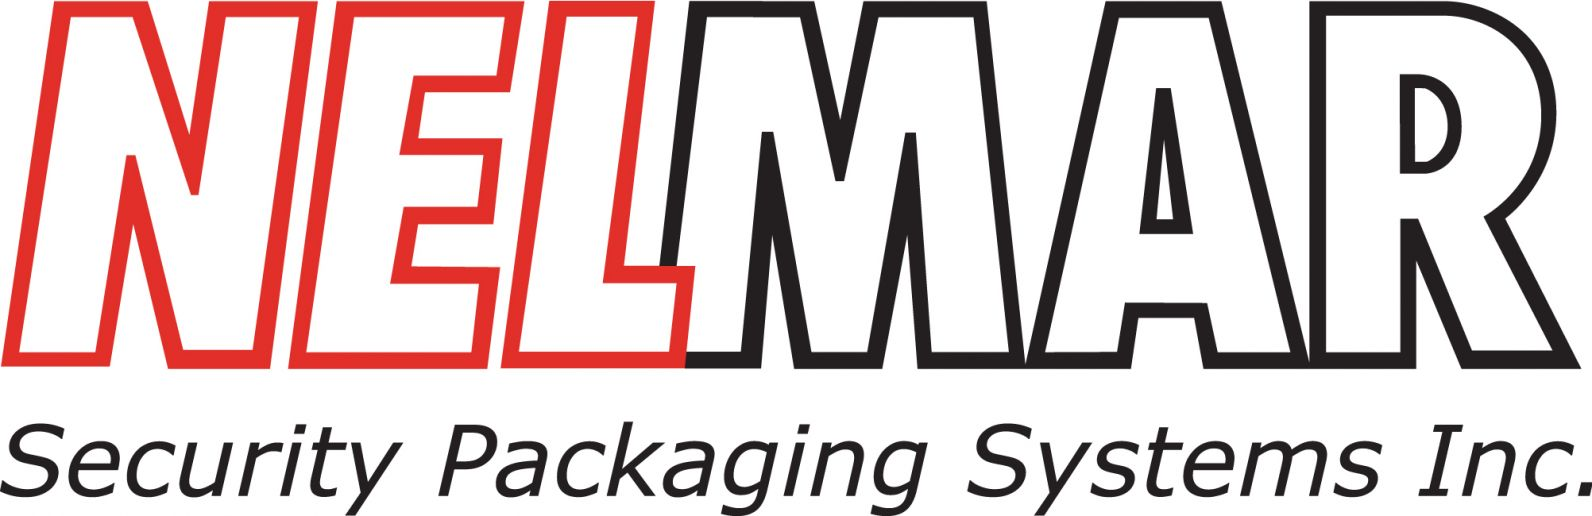 NELMAR Security Packaging Systems Inc. Logo